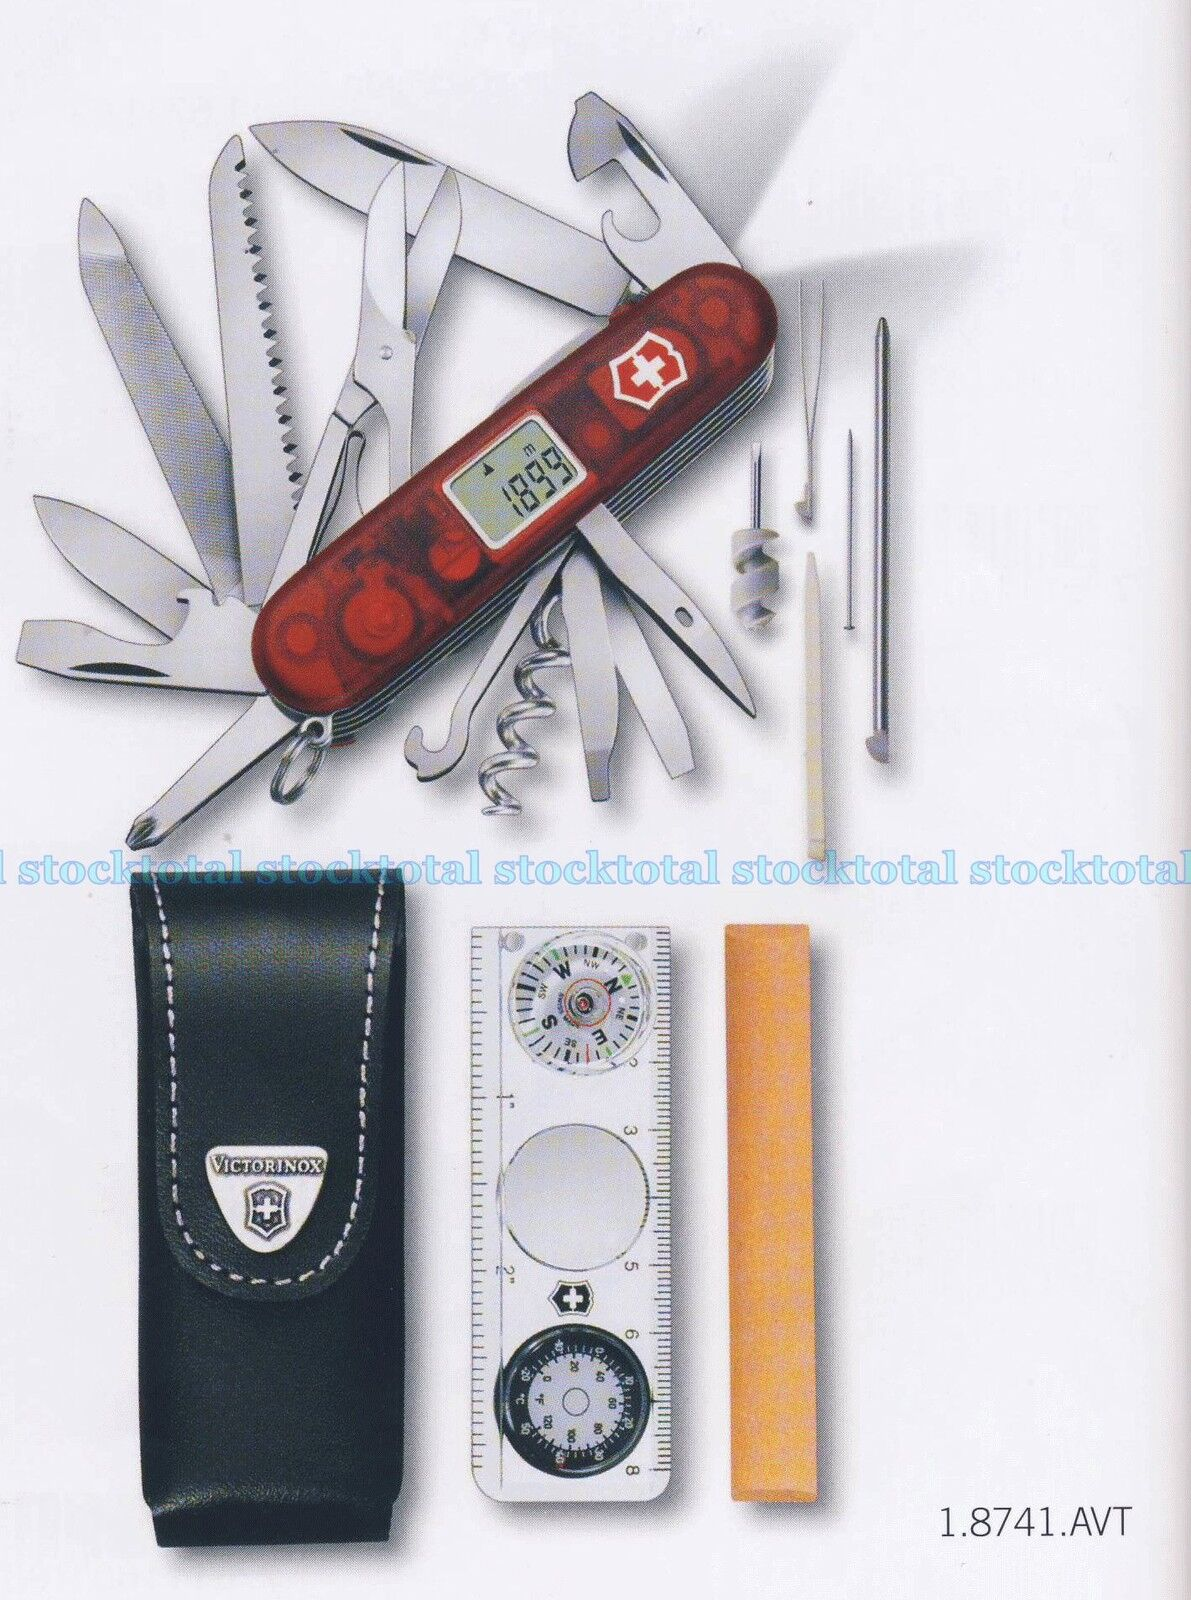 NAVAJA VICTORINOX LITE CON LUZ JUEGOS EXPEDITION KIT 1.8741.AVT V17